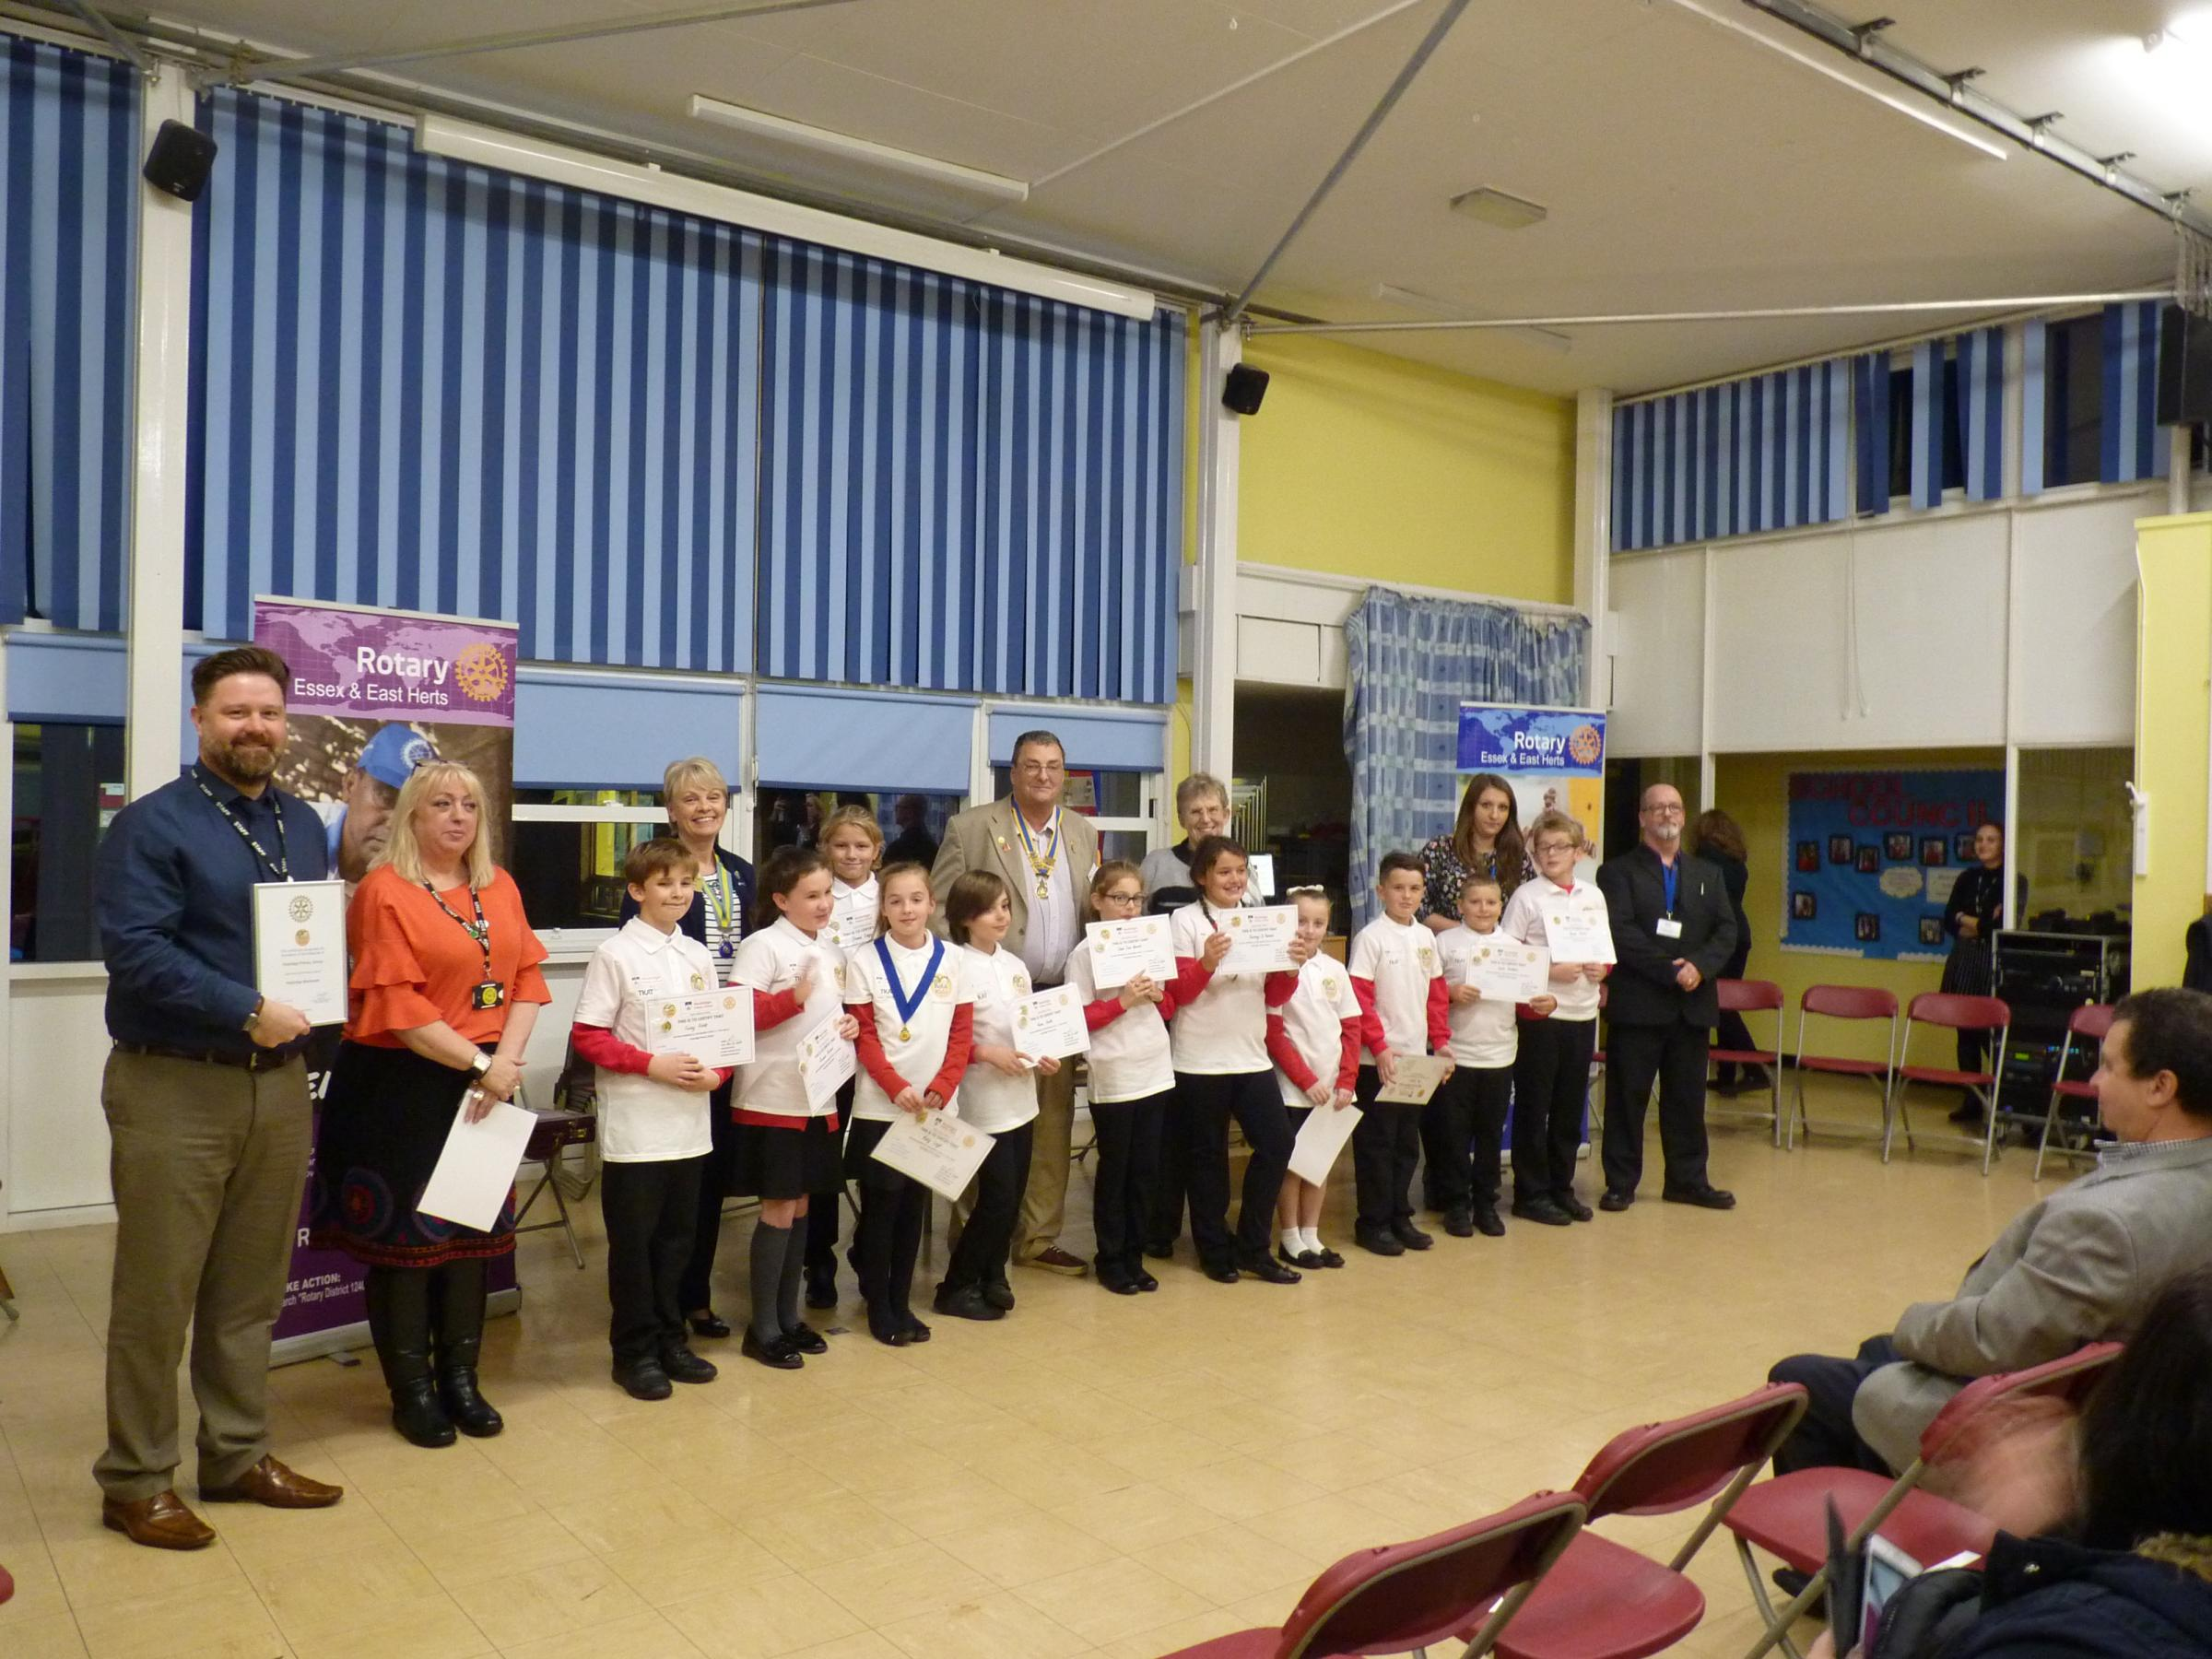 The Rotary Club of Heybridge Blackwater launched its new Rotakids group at Heybridge Primary School